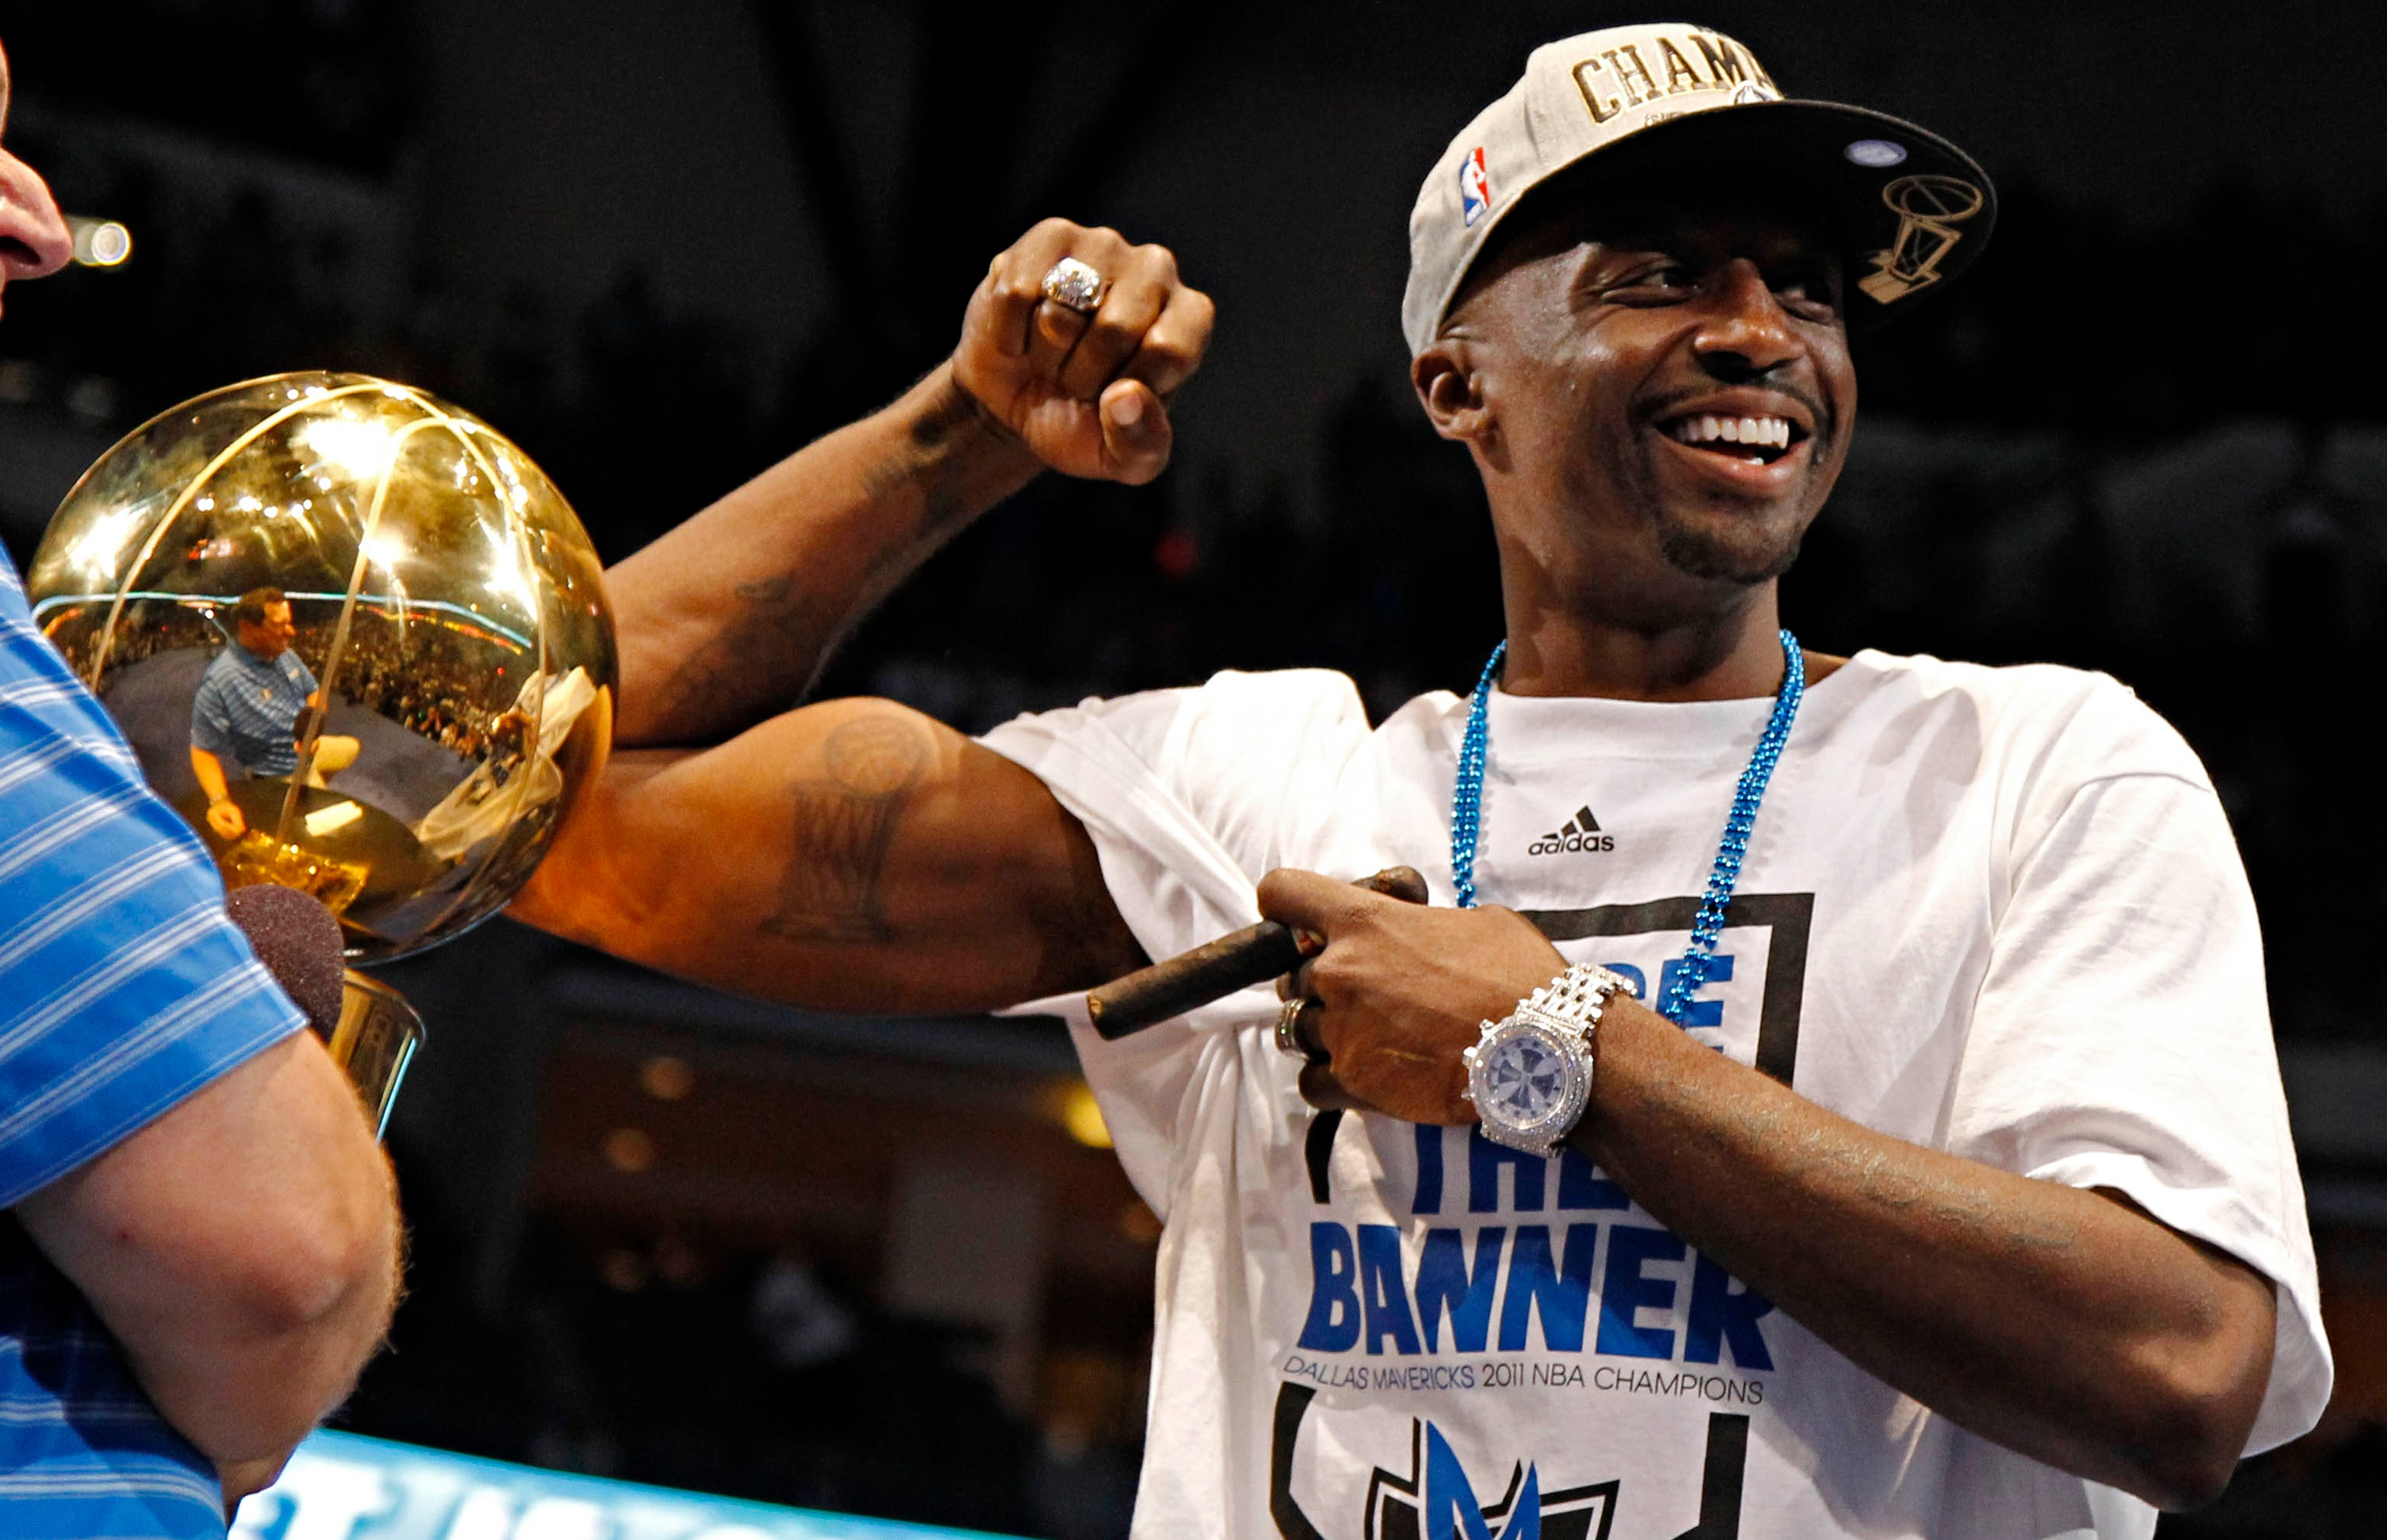 09f09f1a3 Jason Terry Got The Larry O Brien Trophy Tattooed Before The Mavs   Championship Season Started